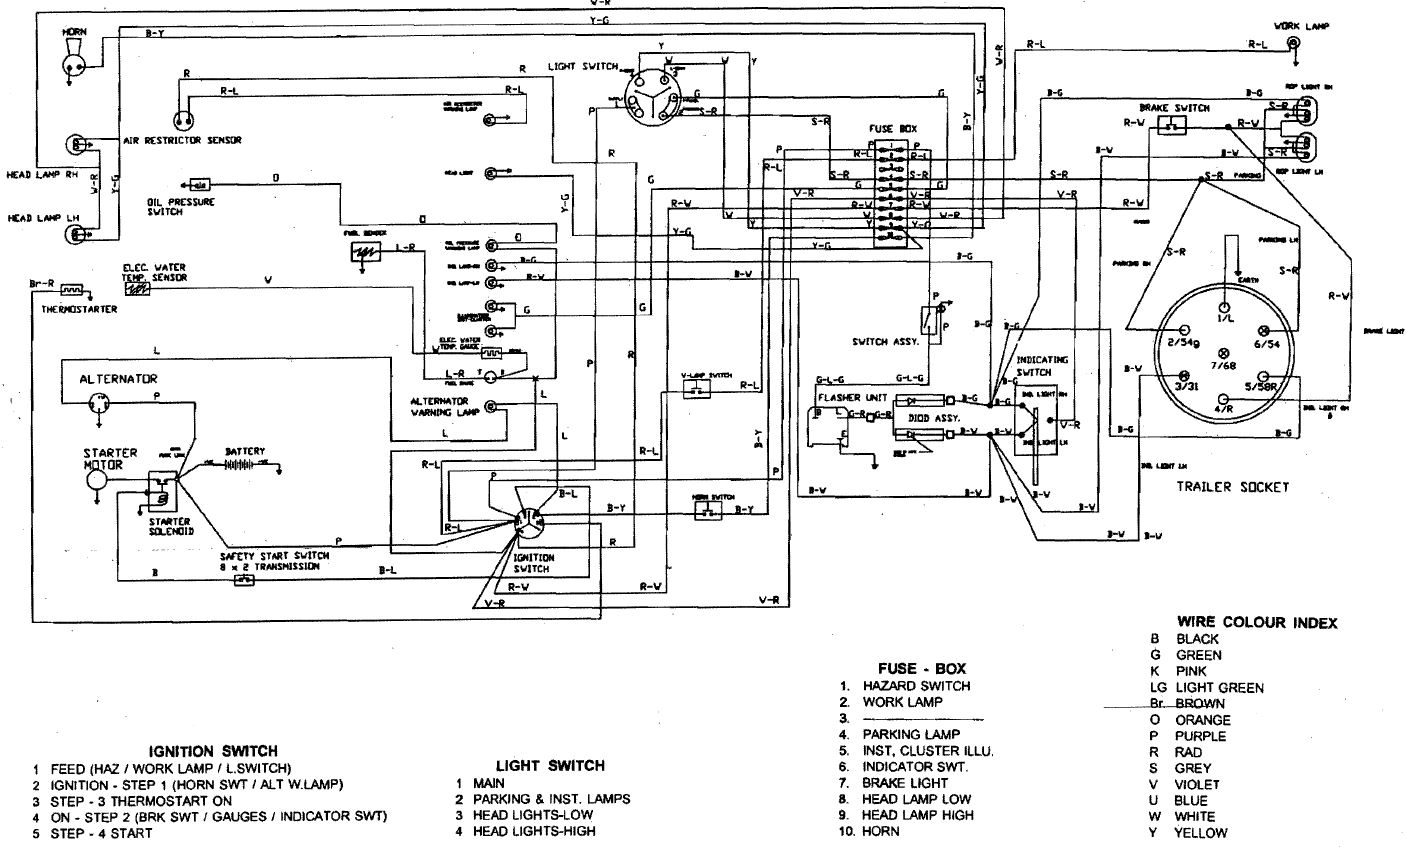 20158463319_b82d524c3d_o ignition switch wiring diagram sundowner wiring diagram at mifinder.co